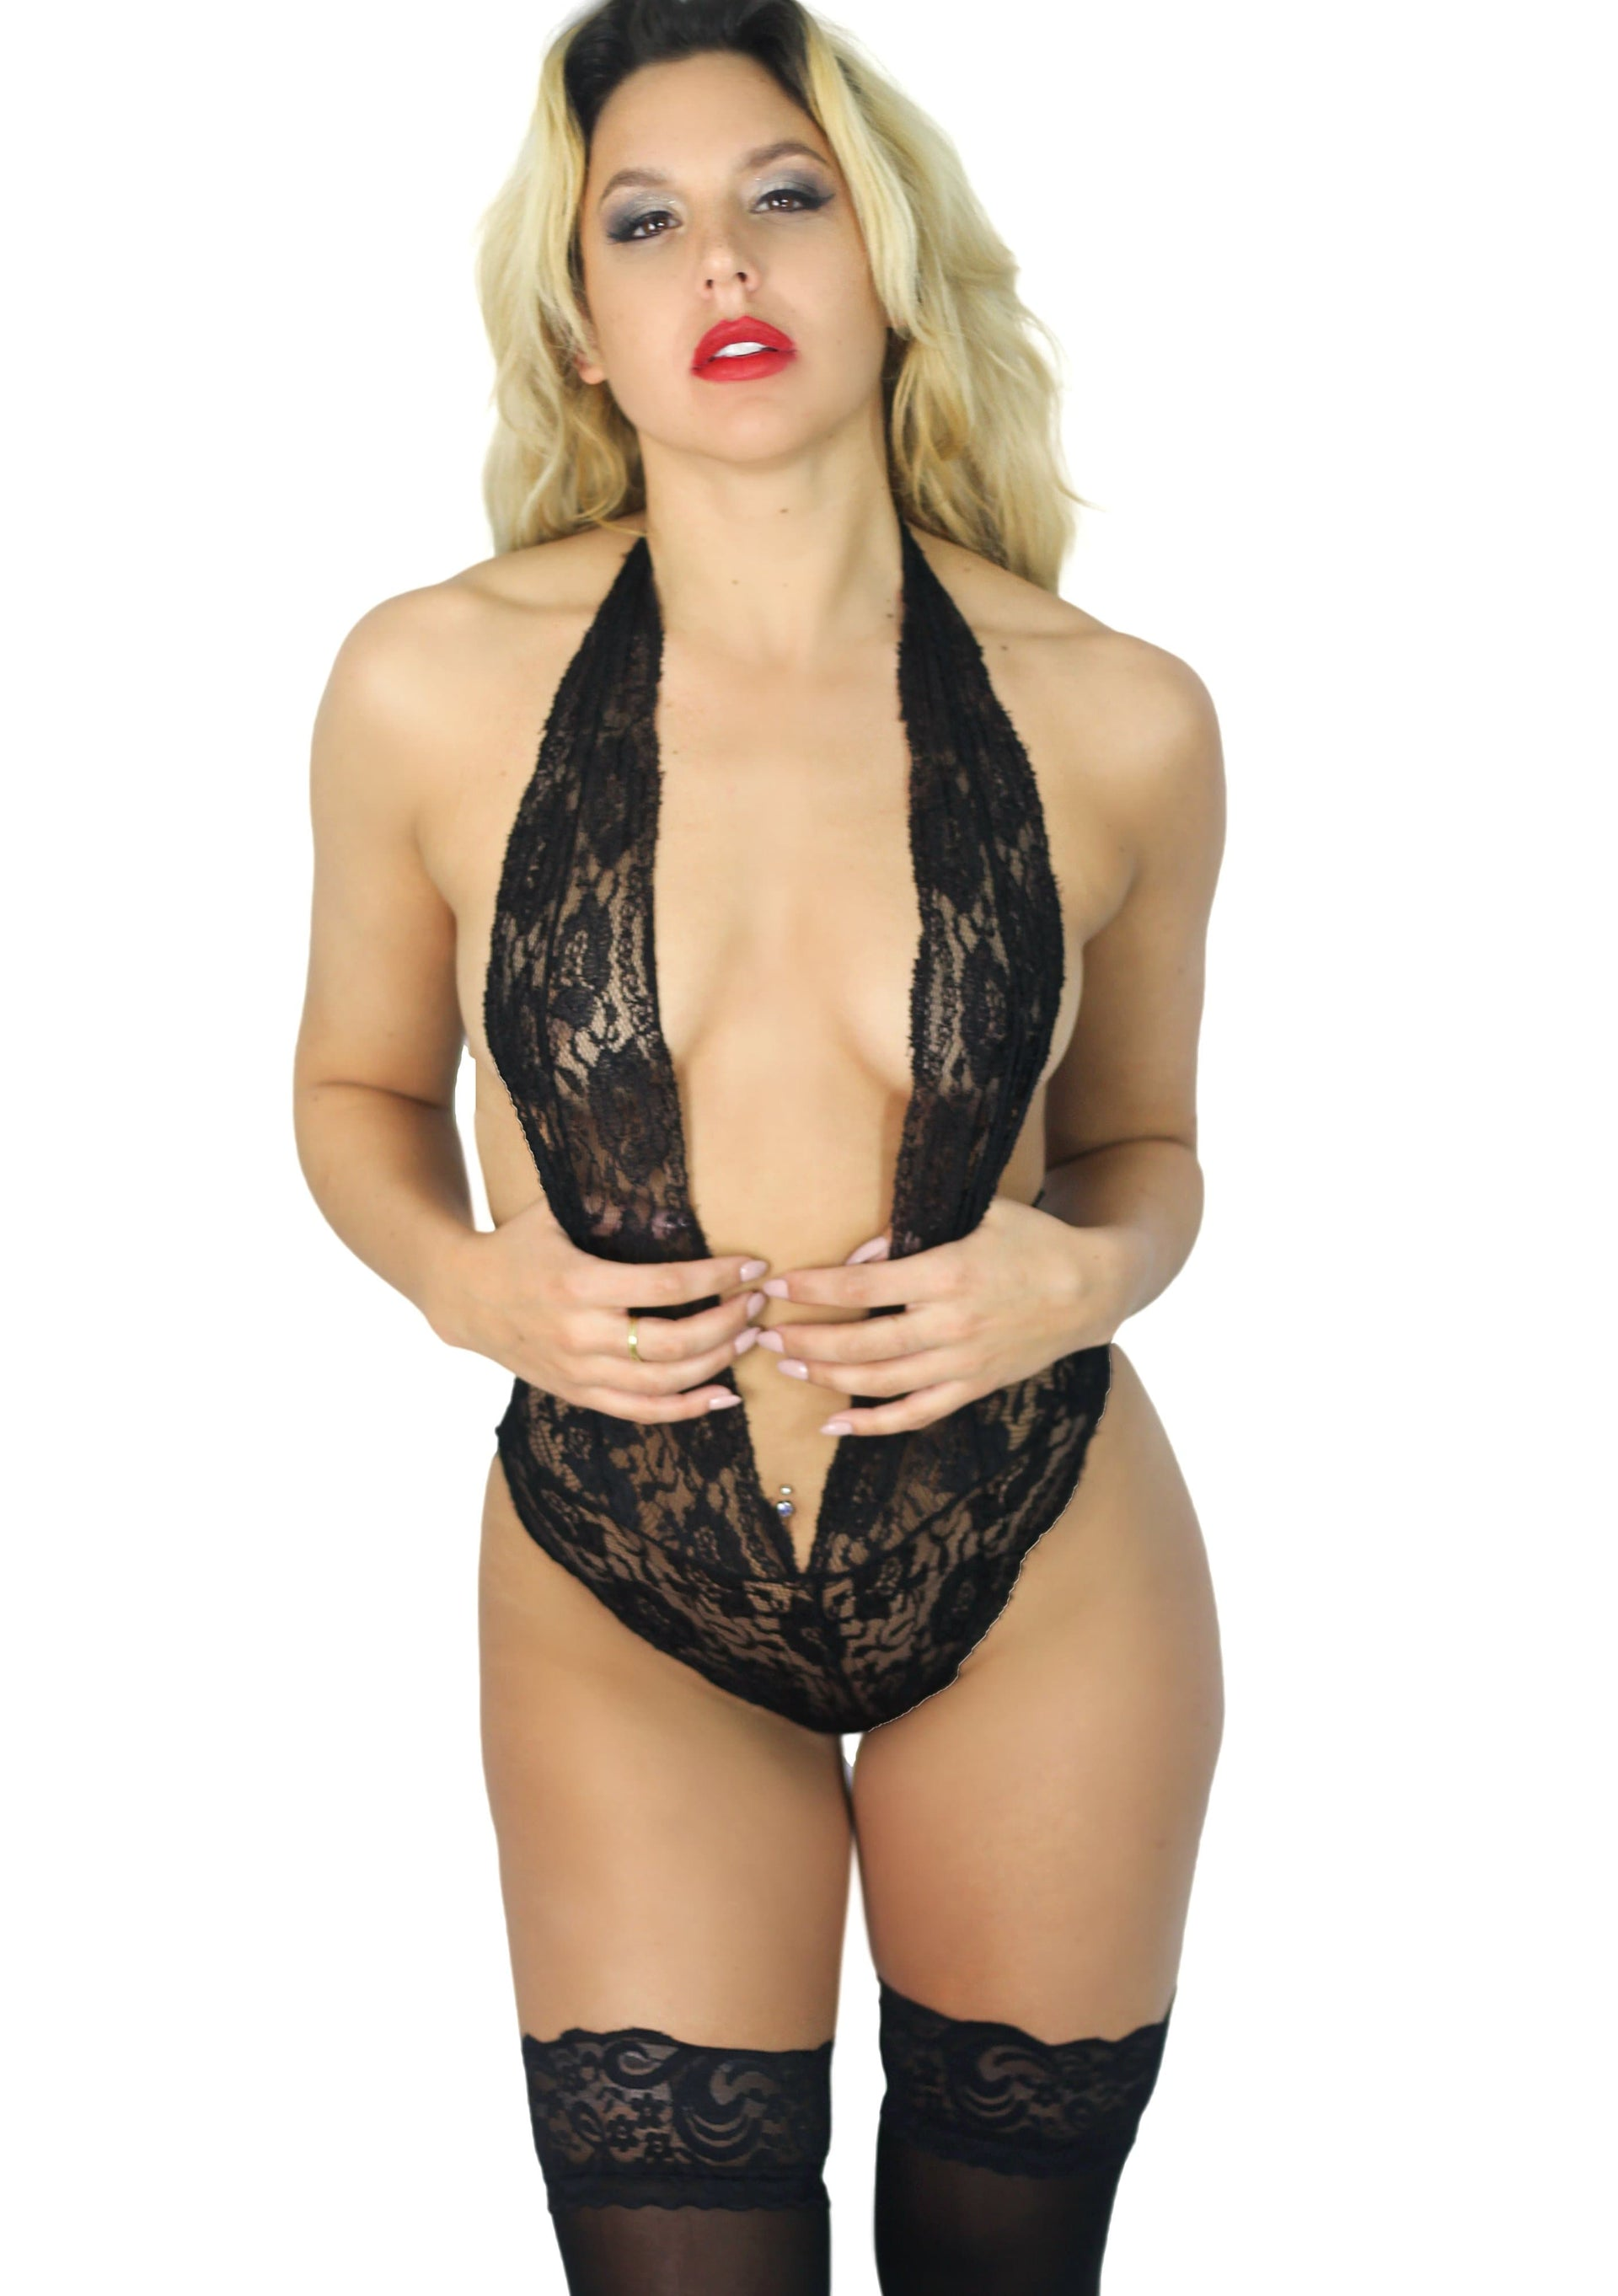 Red & Black Lace Sexy lingerie teddy - Cali Diamond